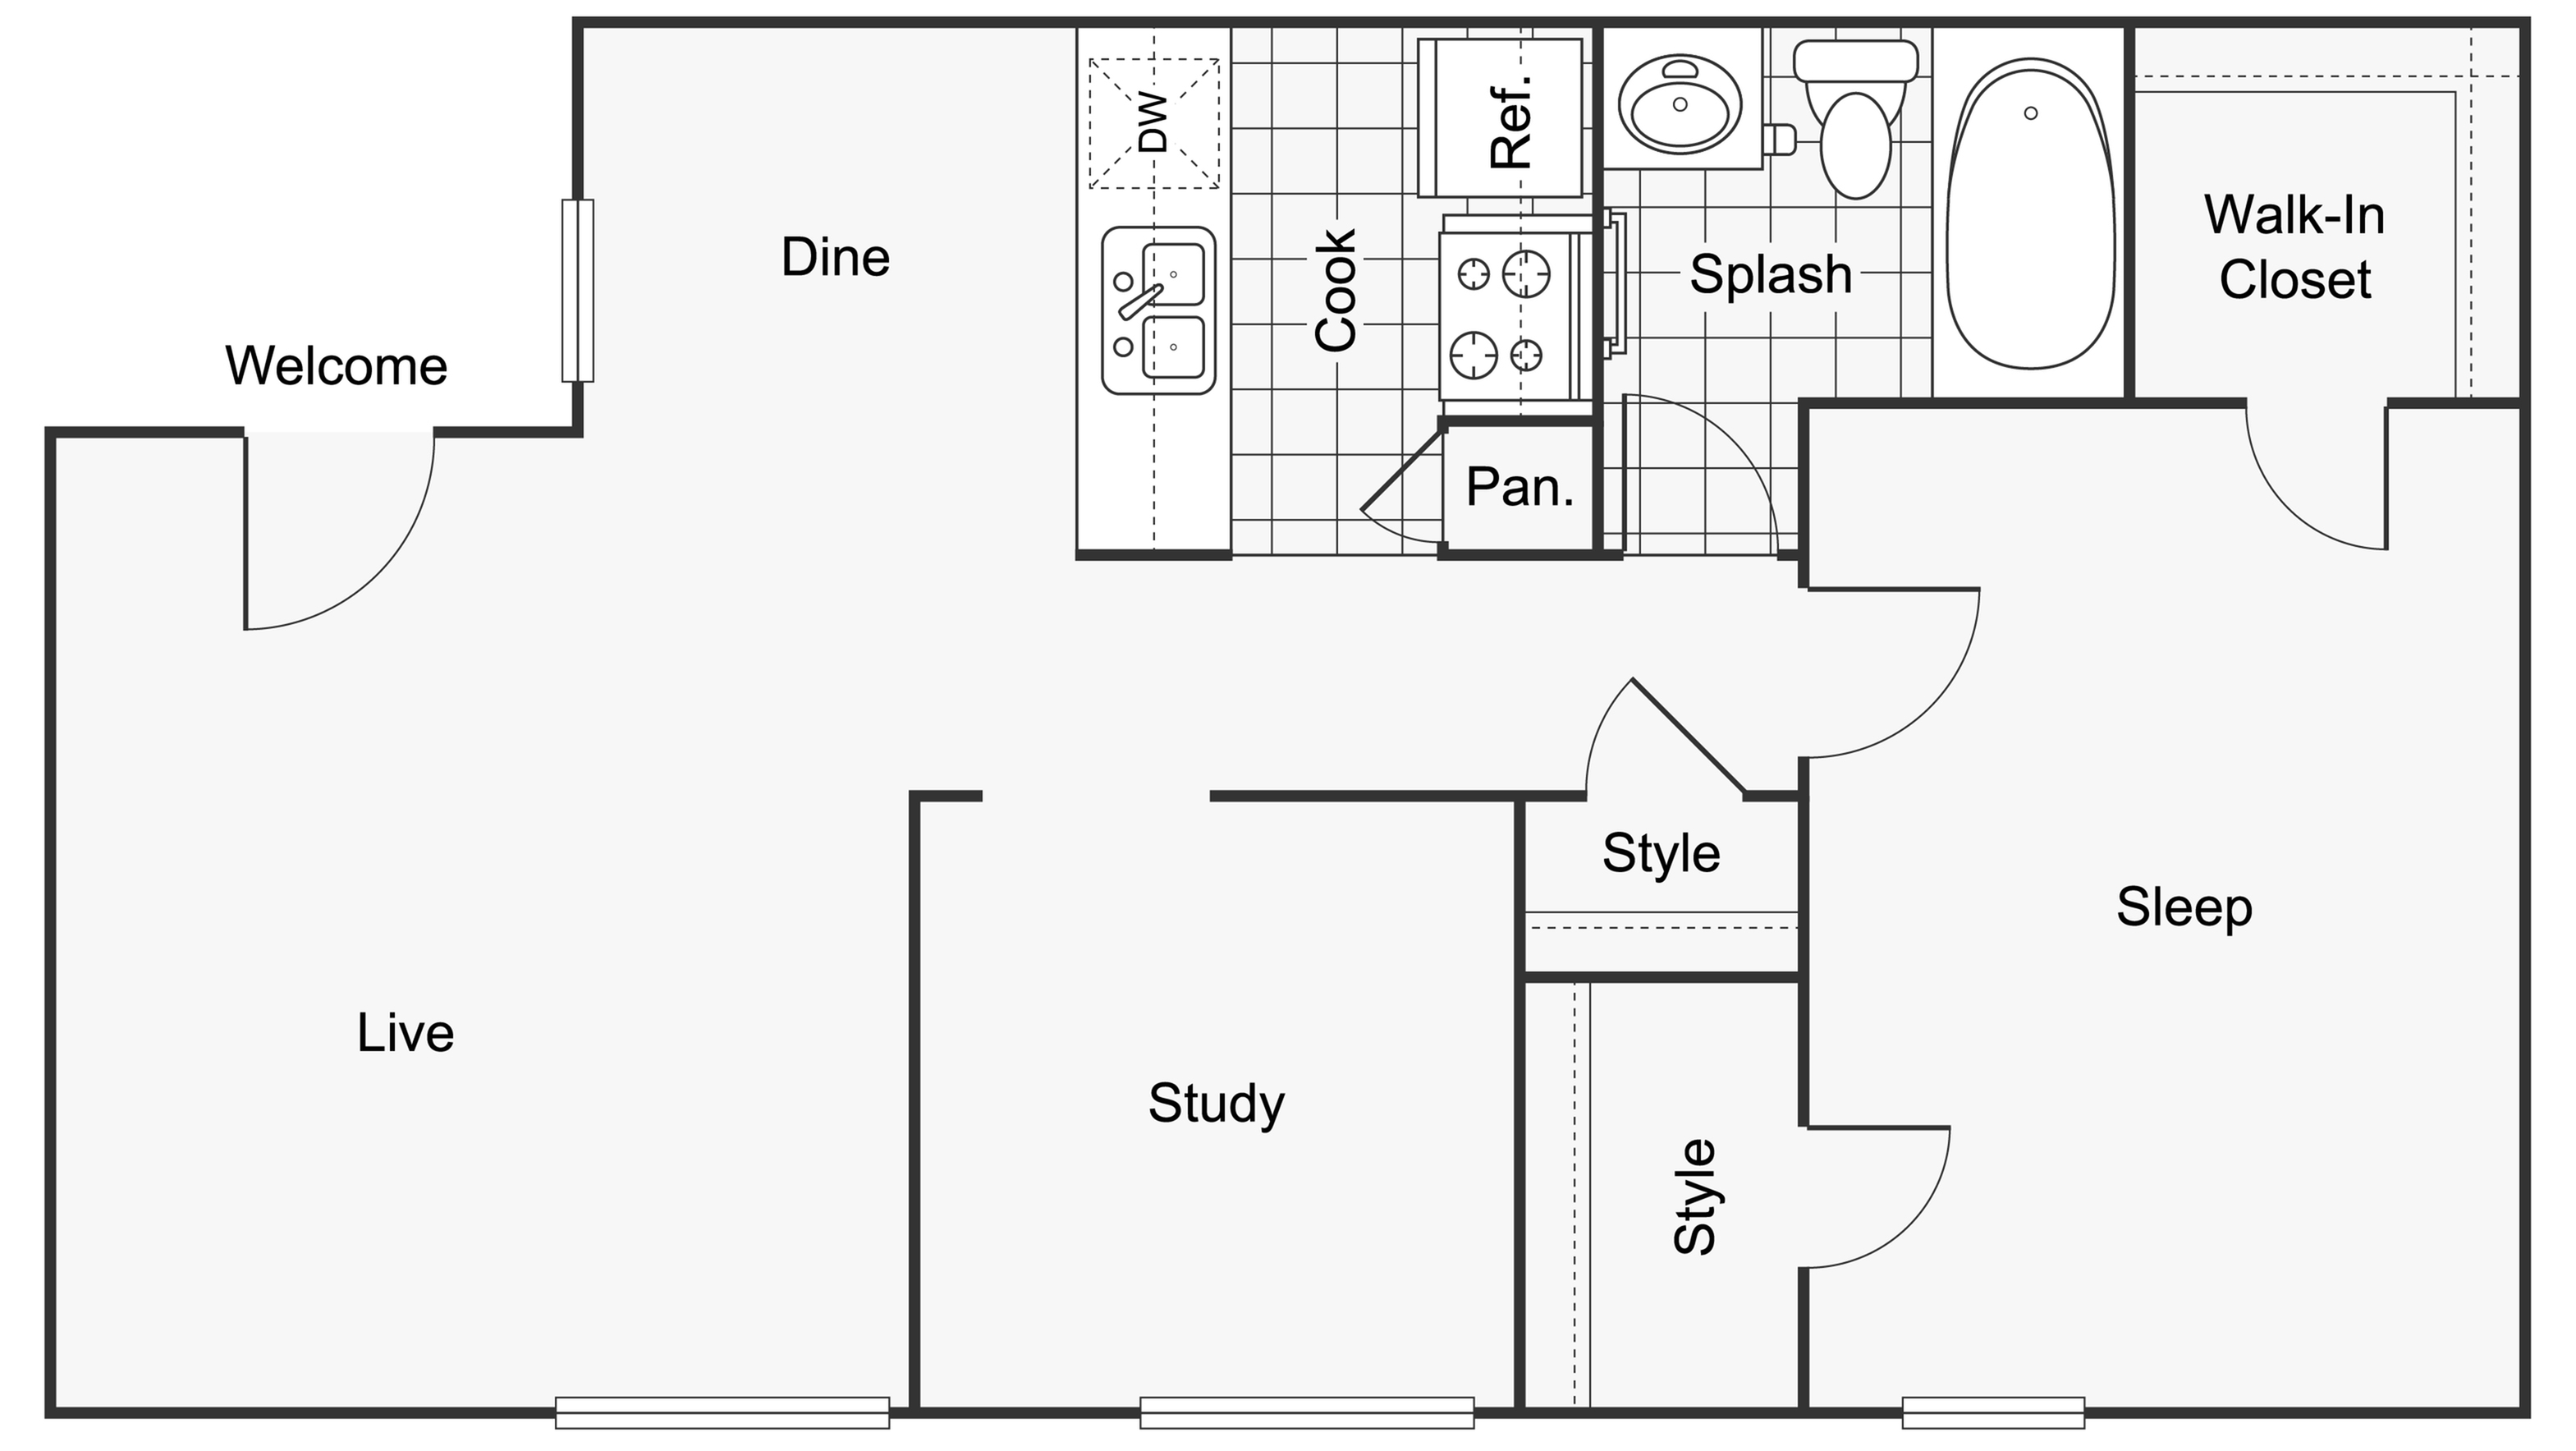 Floor Plan Images | ReNew Scotsdale Apartment Homes for Rent in Midland TX 79707